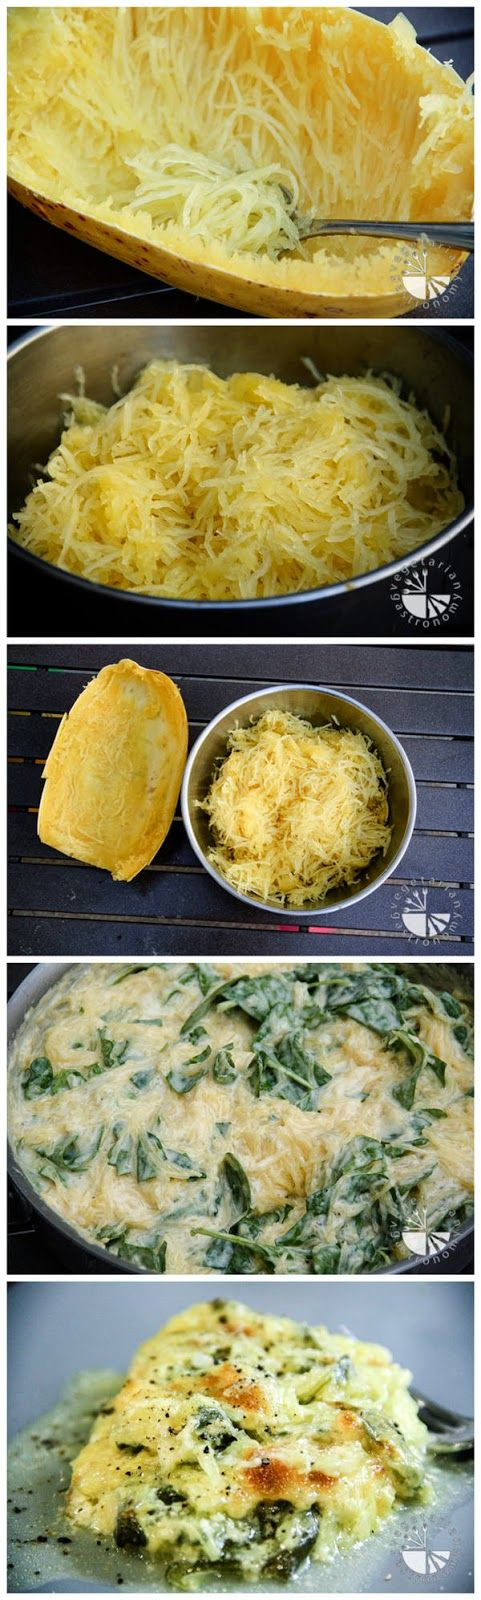 Baked Spaghetti Squash w/Cheddar Cheese & Spinach (contains dairy, contains gluten) - Truelifekitchen